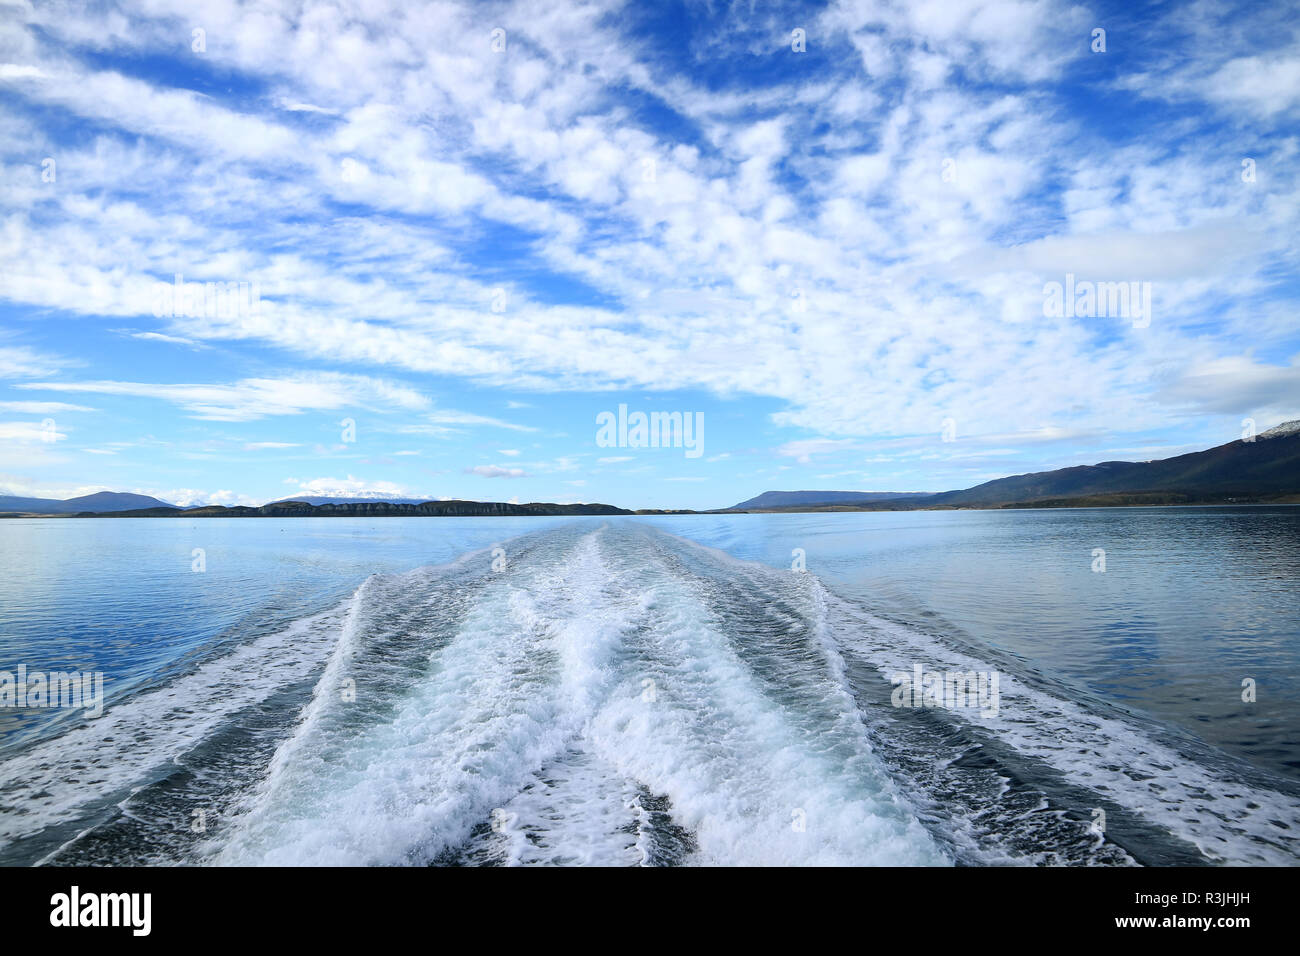 Powerful foaming water at the stern of cruise ship cruising the Beagle channel, Ushuaia, Tierra del Fuego, Argentina - Stock Image